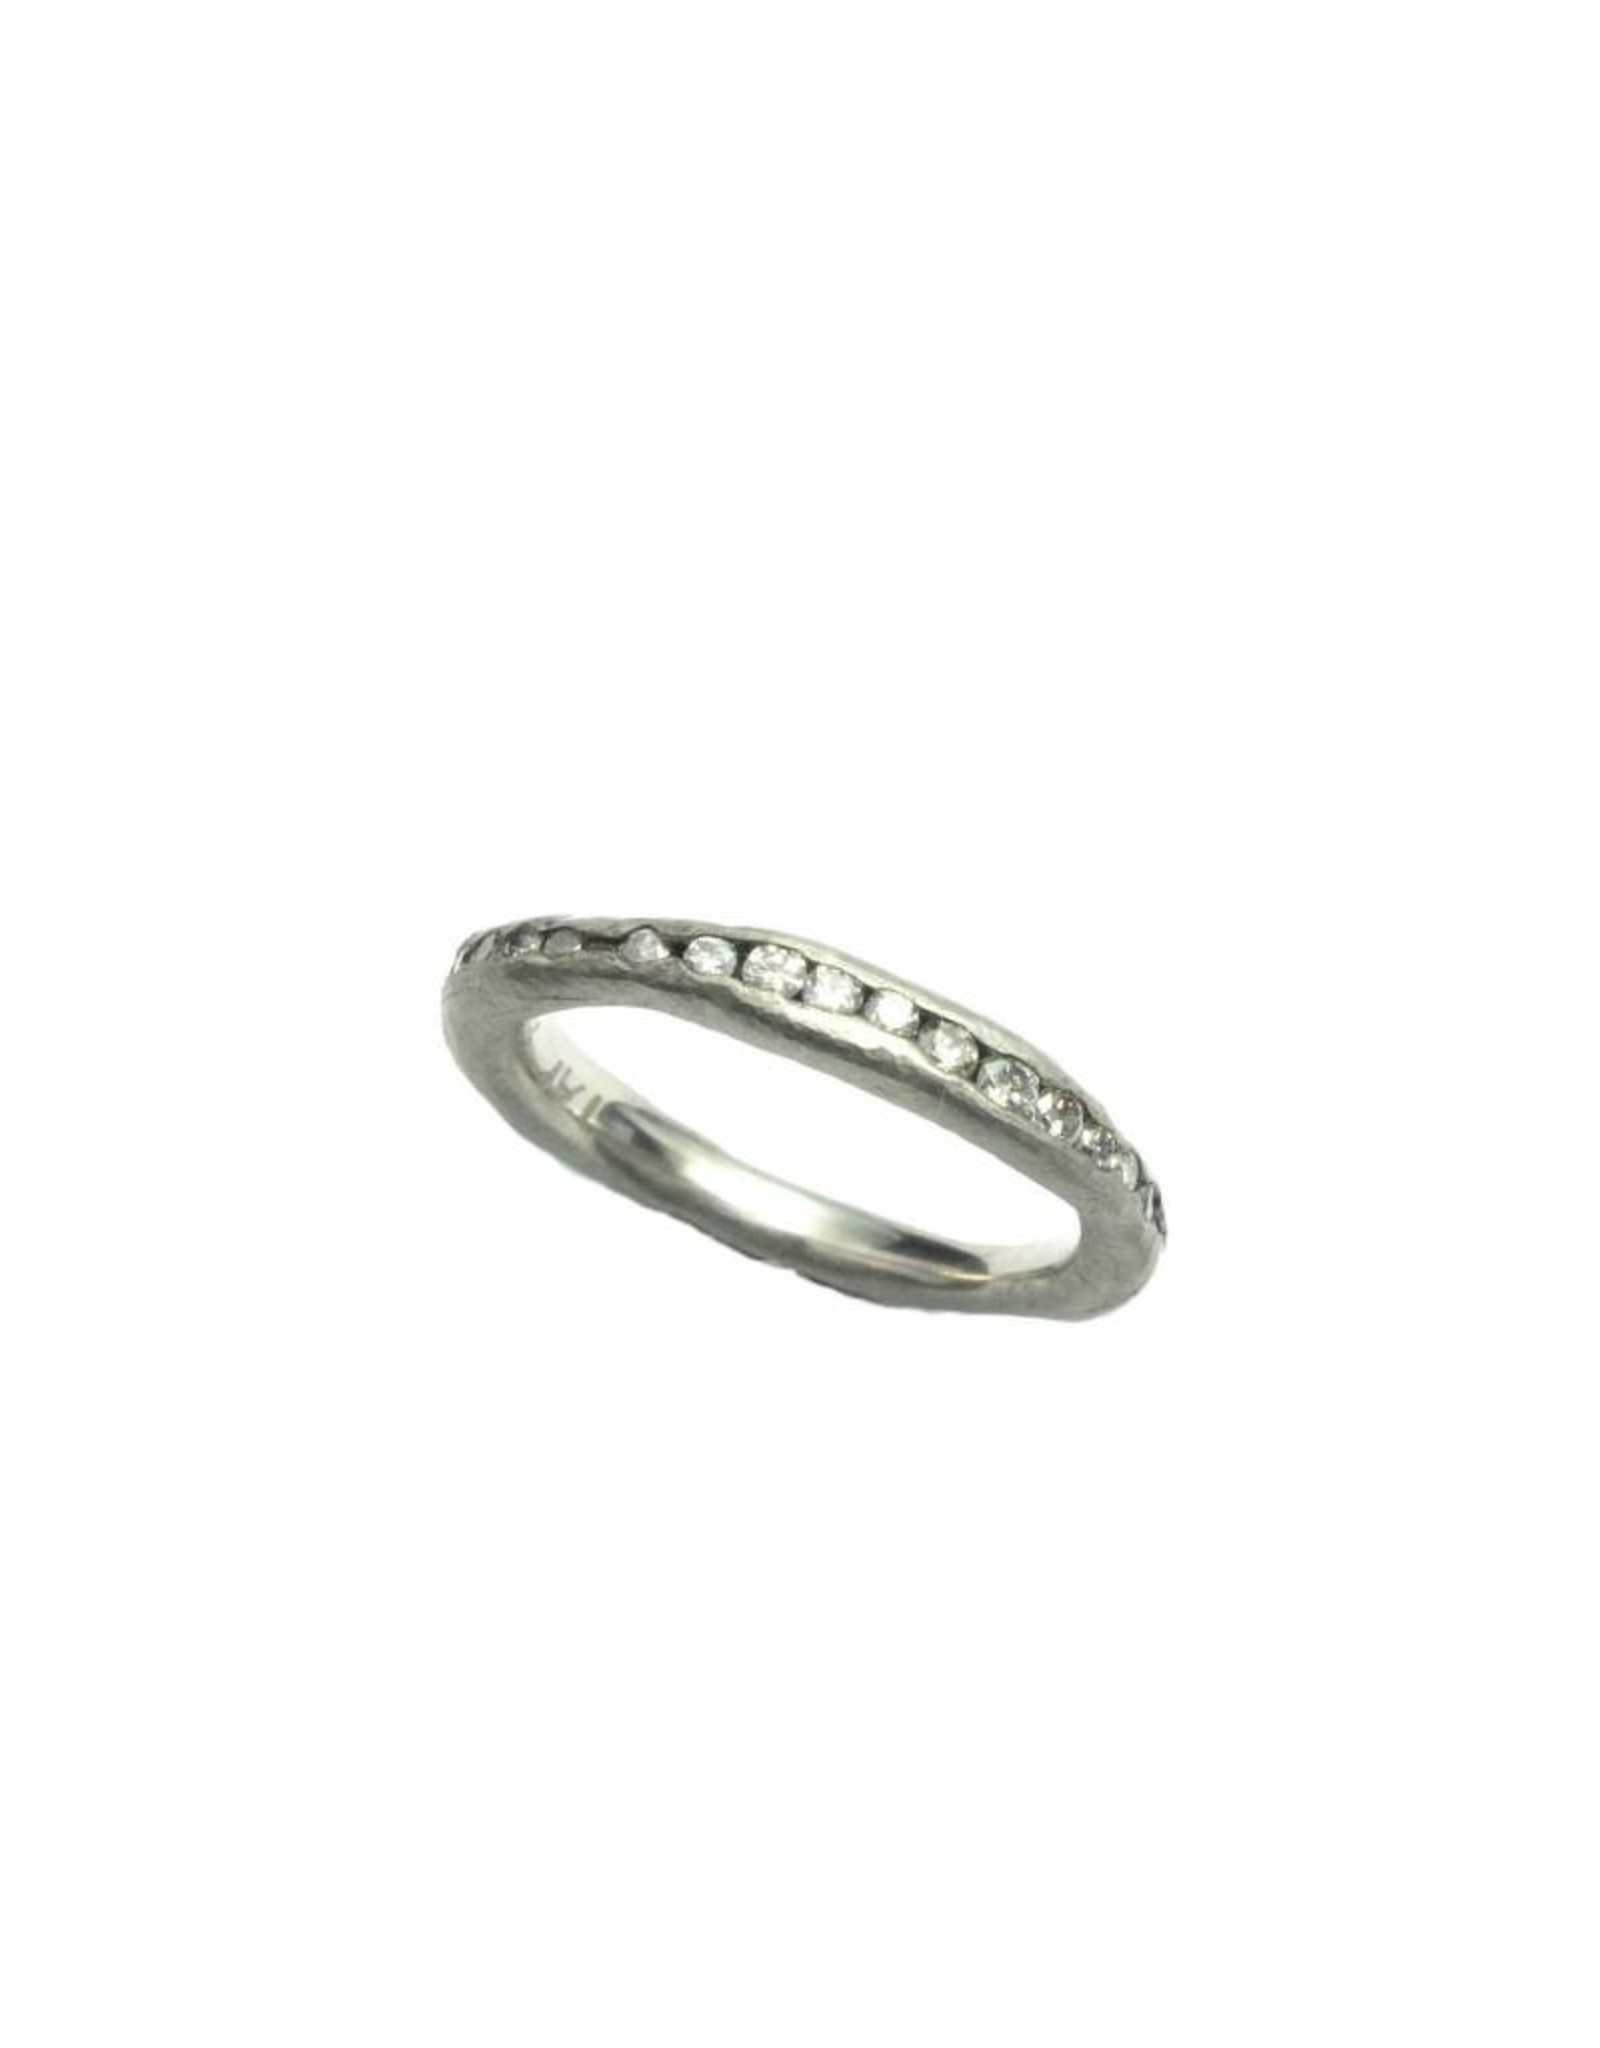 TAP by Todd Pownell Palladium Irregular Channel Ring with Diamonds